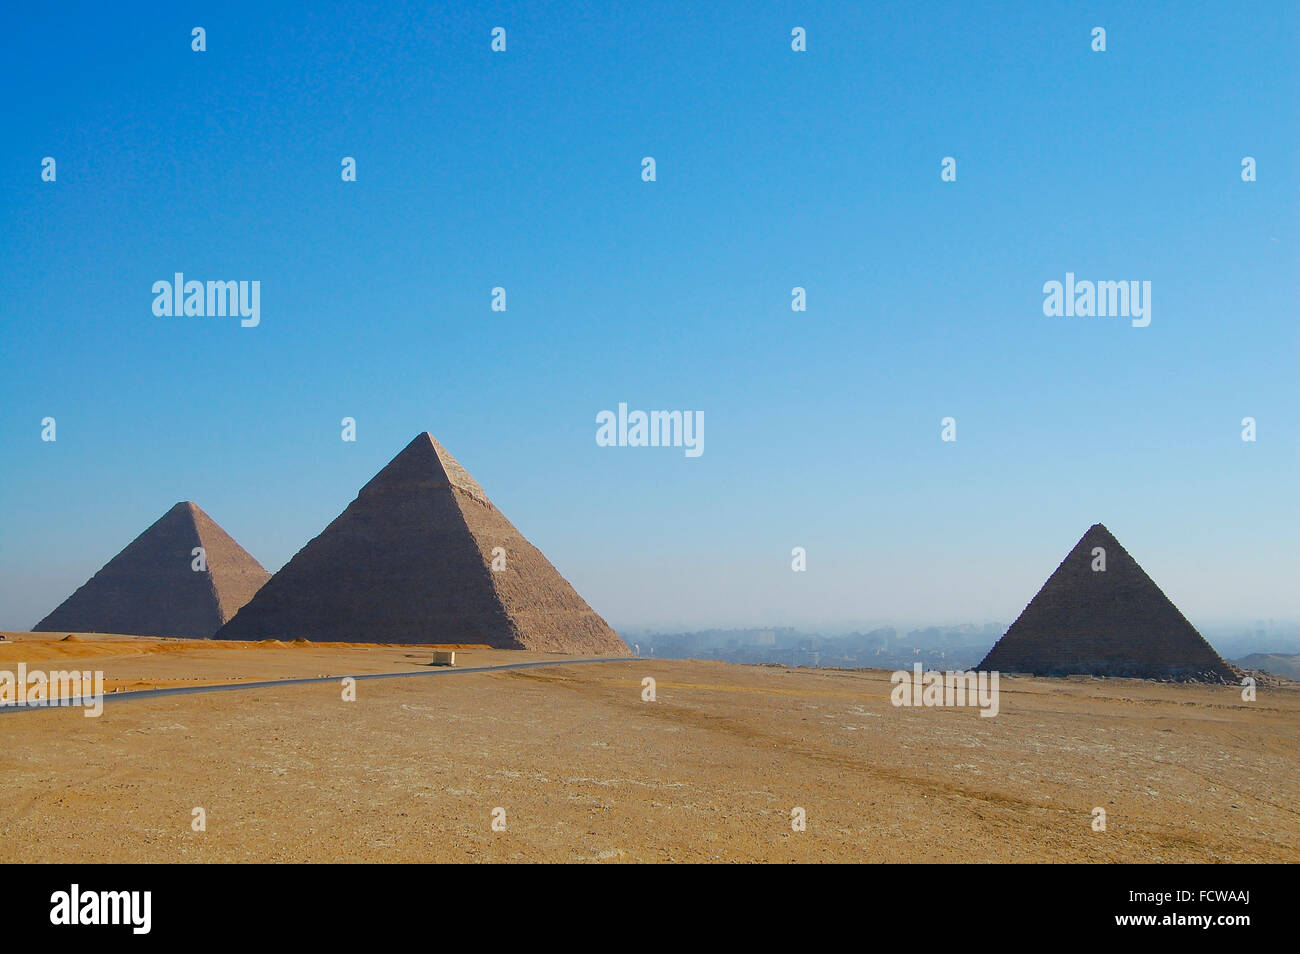 Les Pyramides de Guizeh - Le Caire - Egypte Photo Stock